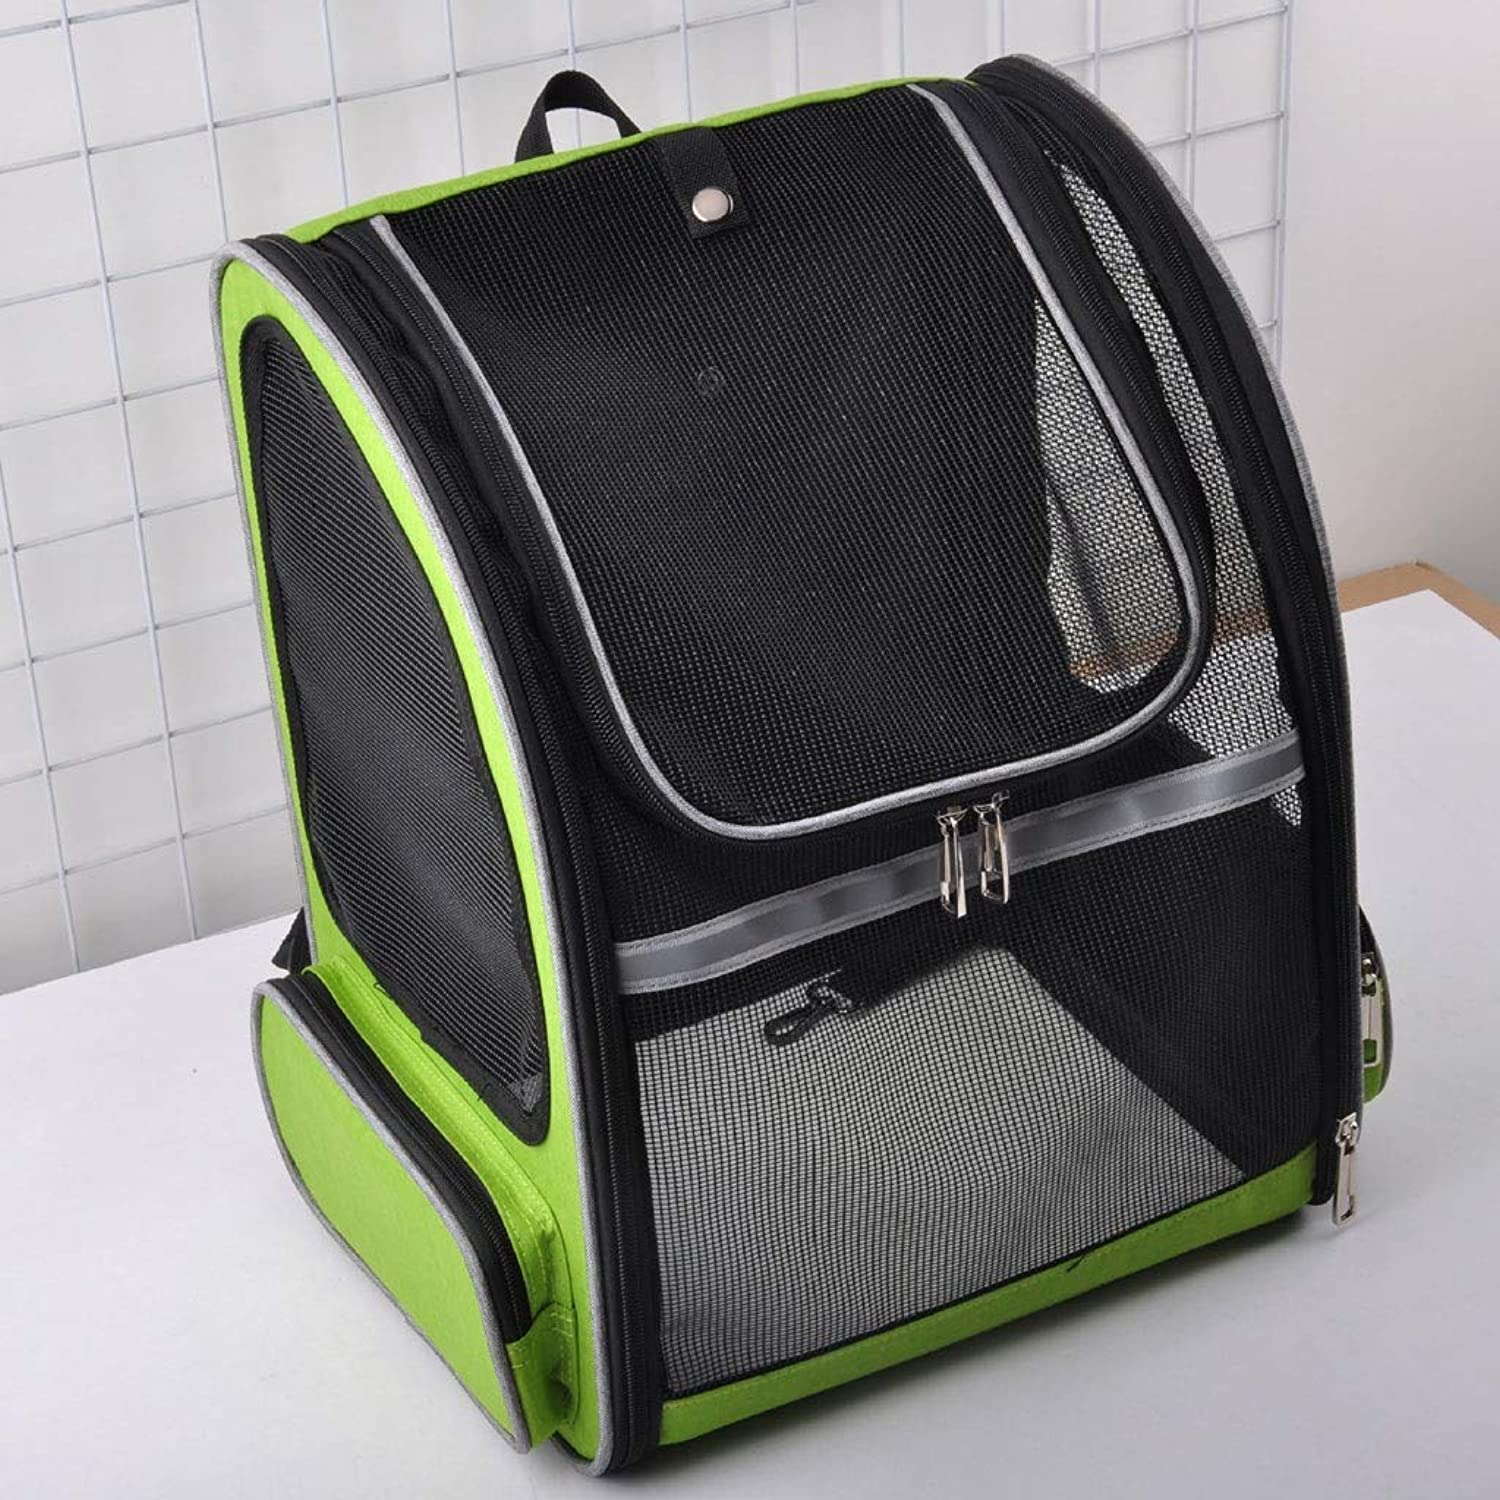 Full Net Pet Bag Breathable Pet Backpack Out Portable Cat Bag (color   Green)